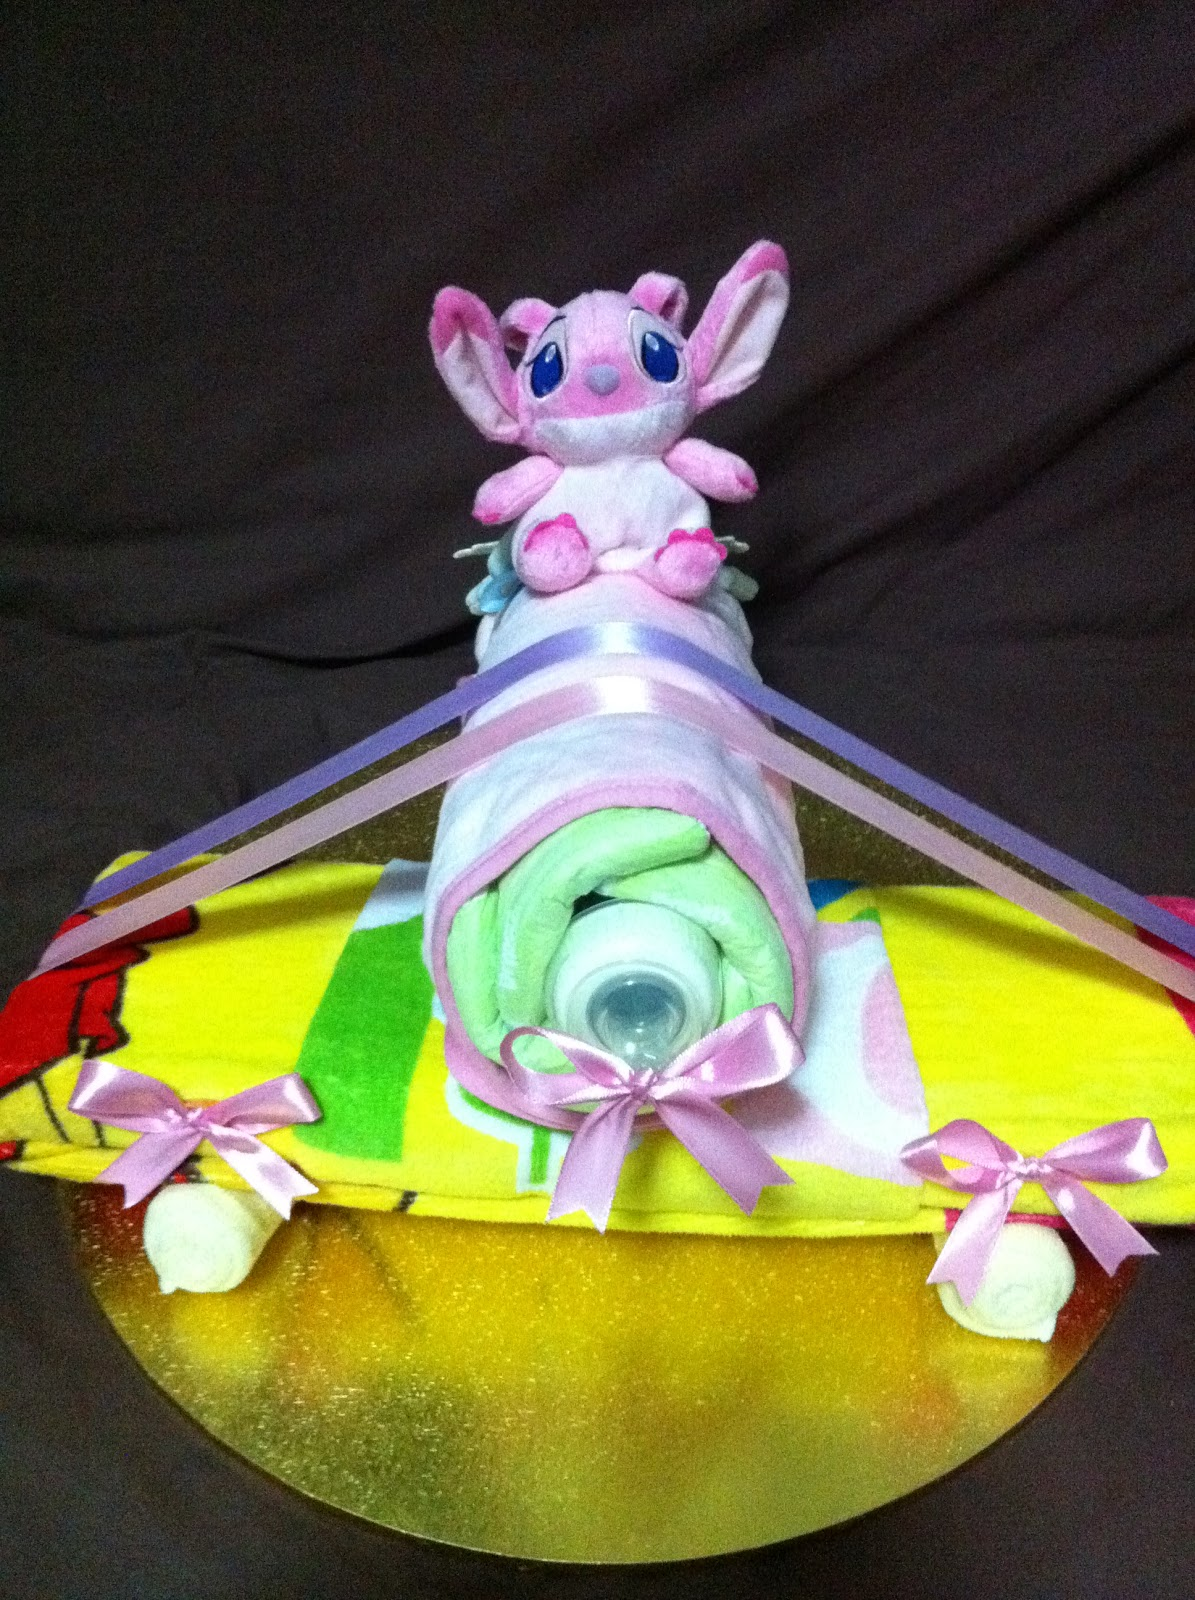 Baby Gift Creations : Nurie s creations diaper cakes baby gifts airplane